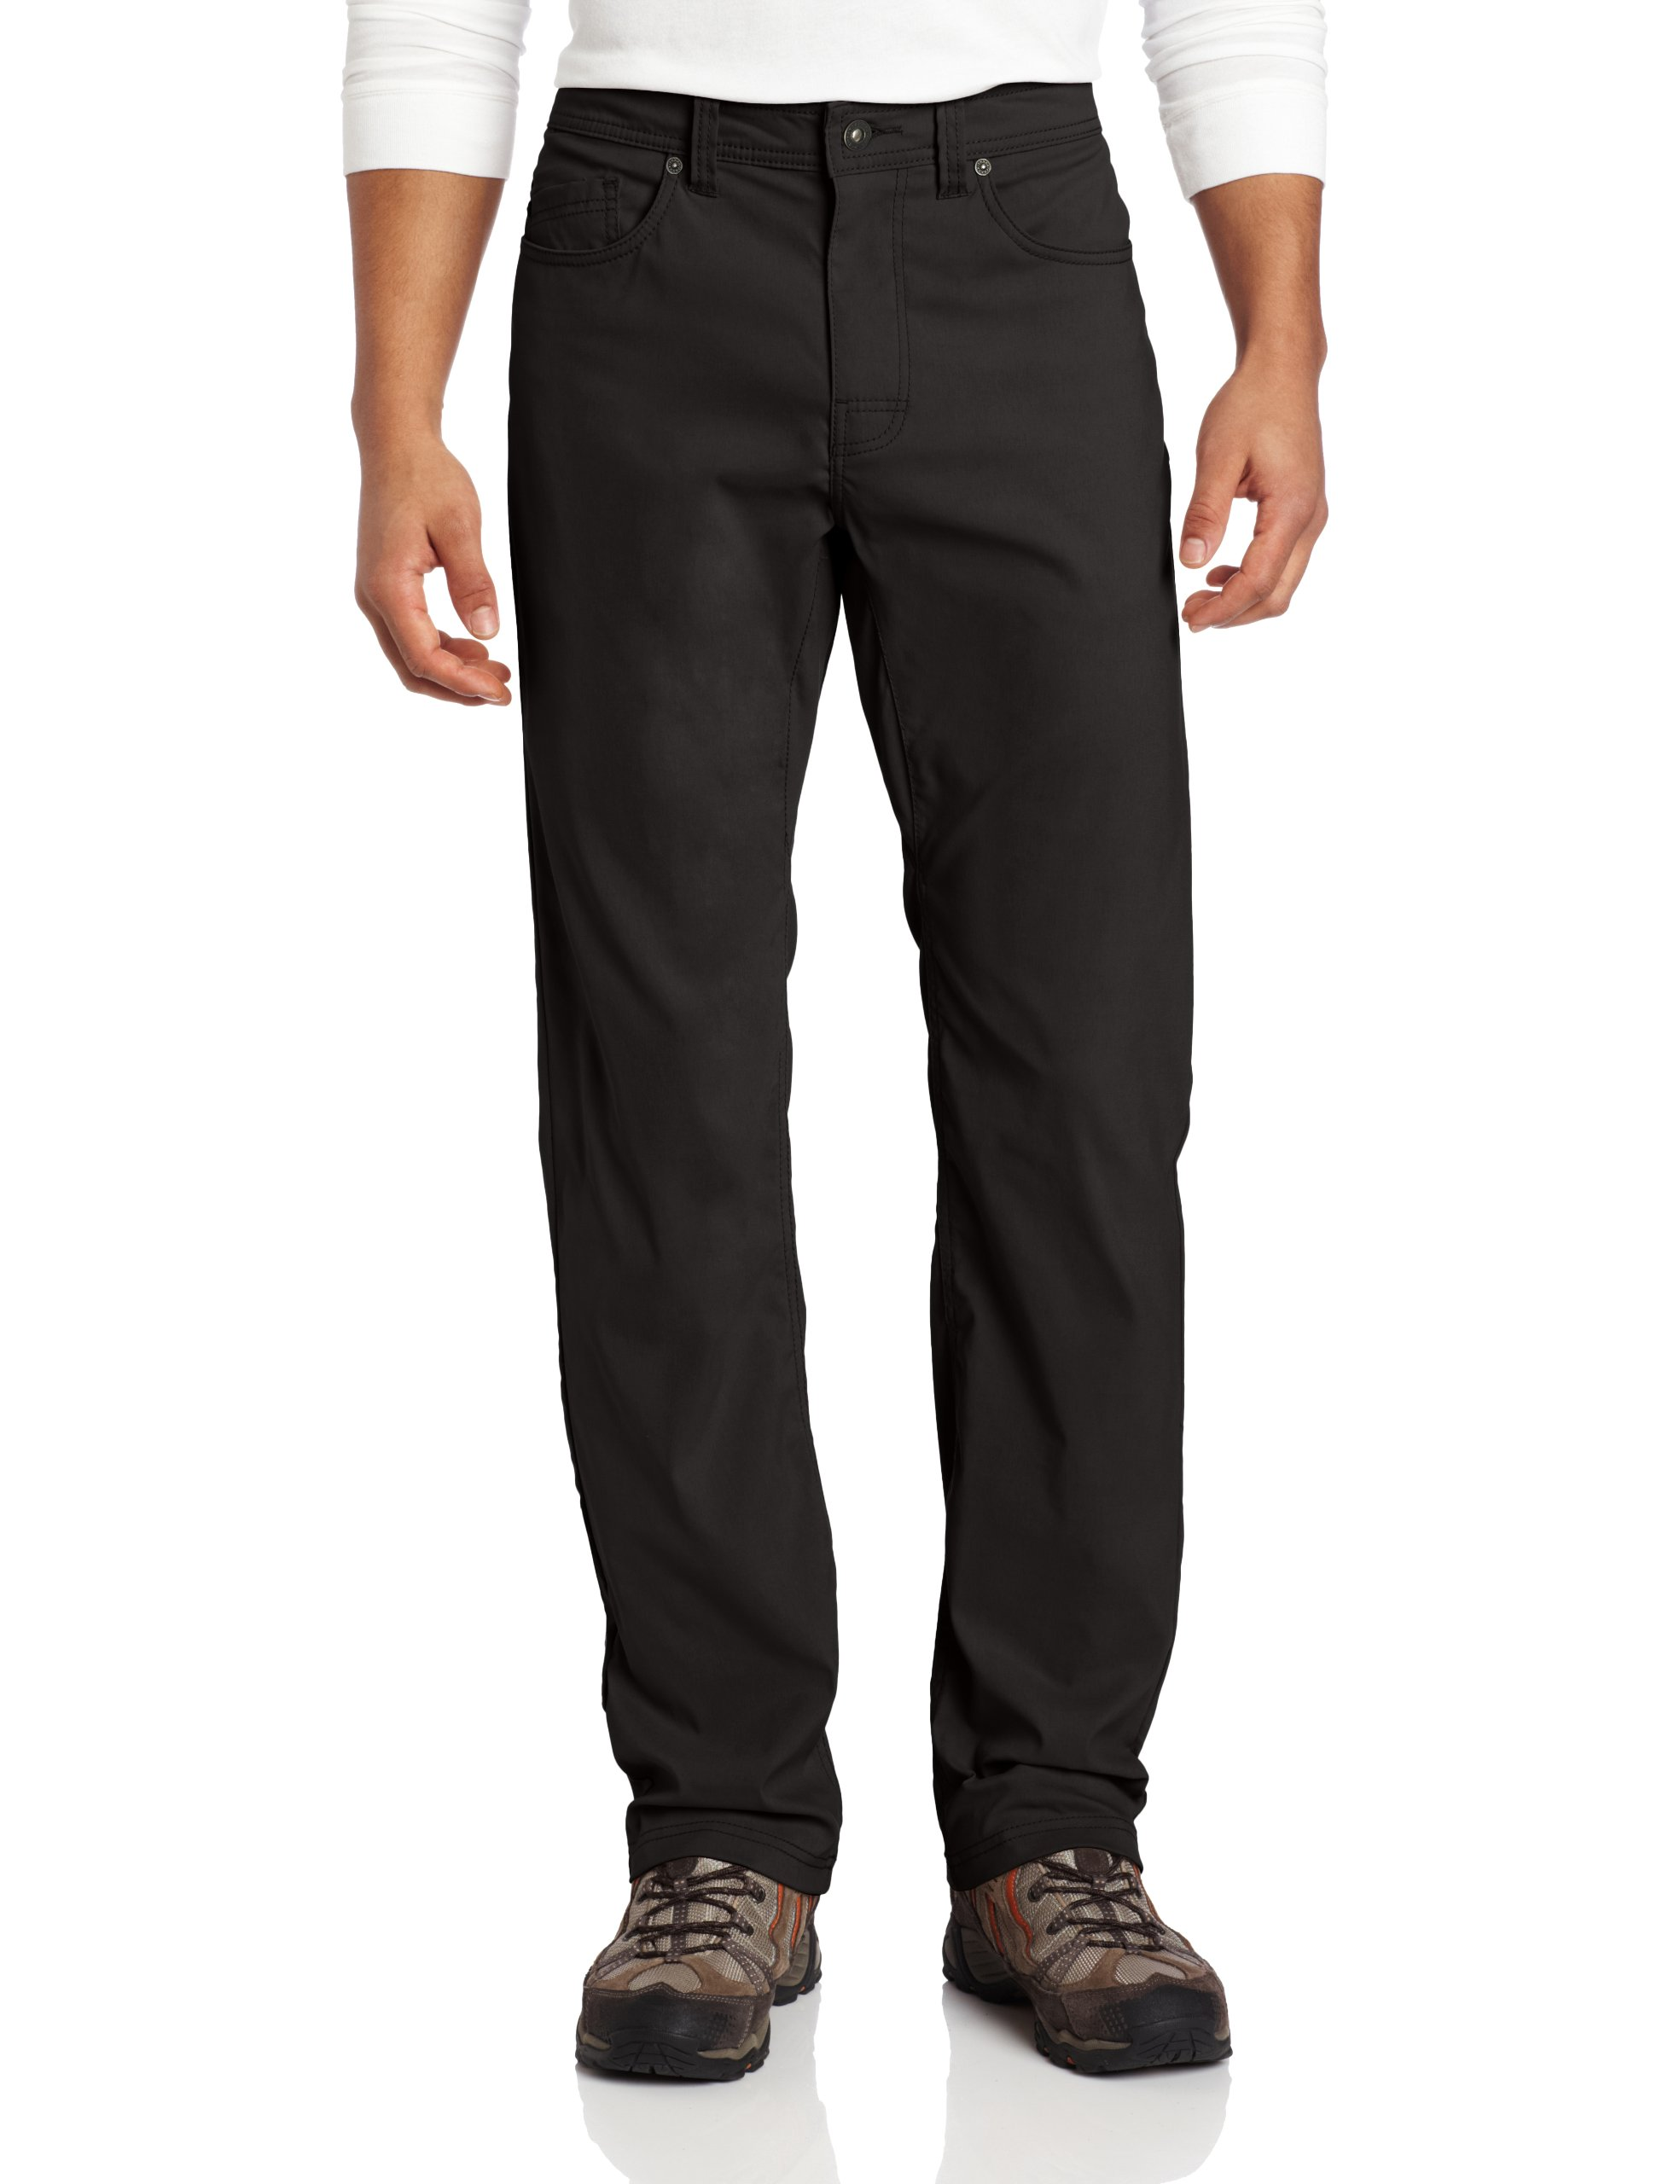 prAna Men's Brion Pant 30'' Inseam,Charcoal,US 30